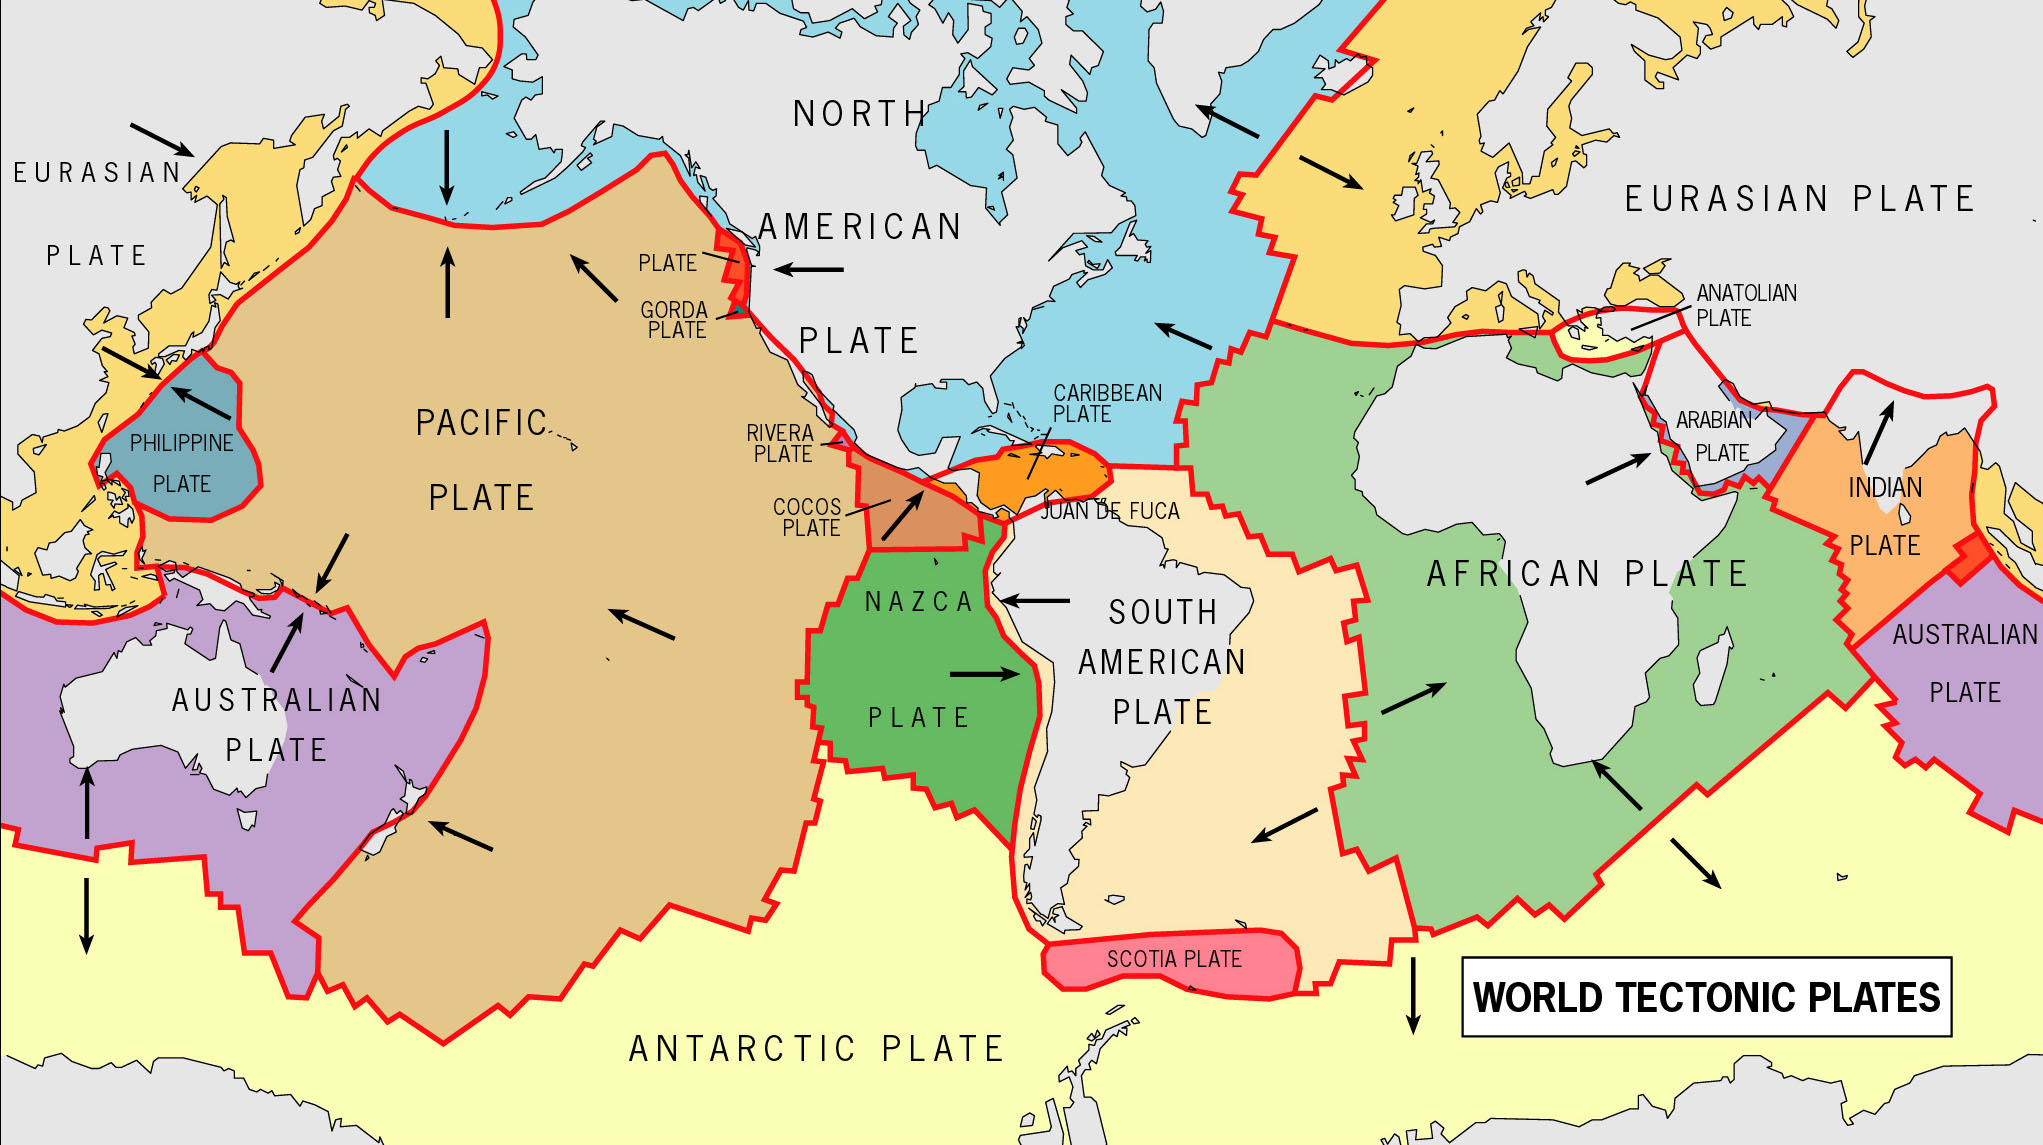 Plate tectonics - Geography from KS3 to IB